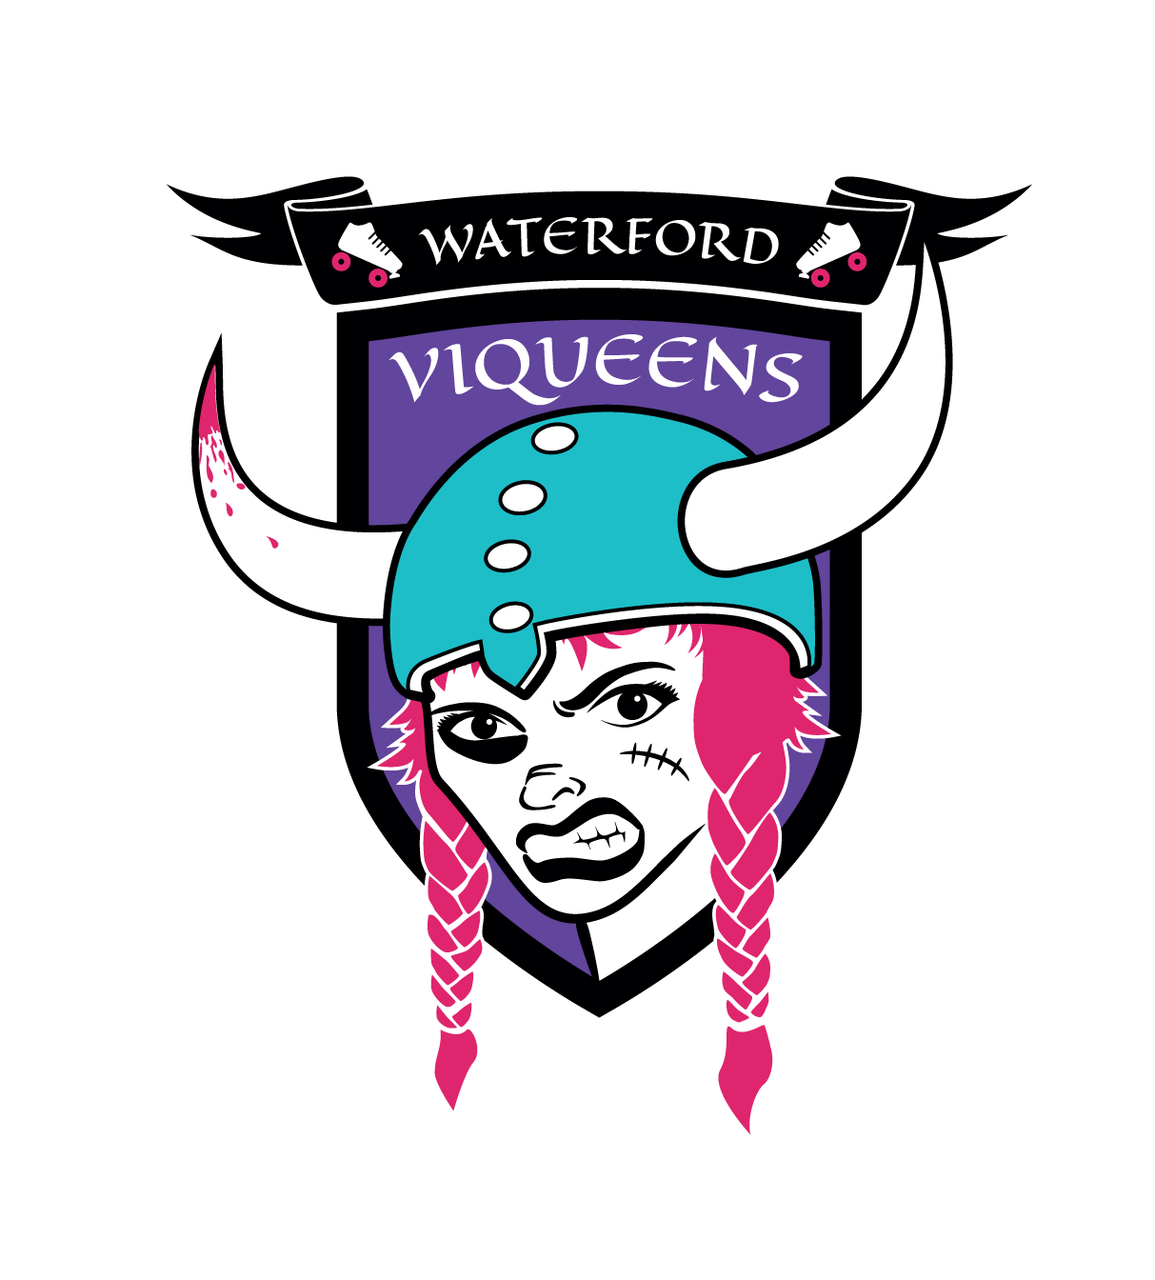 Waterford ViQueens Logo